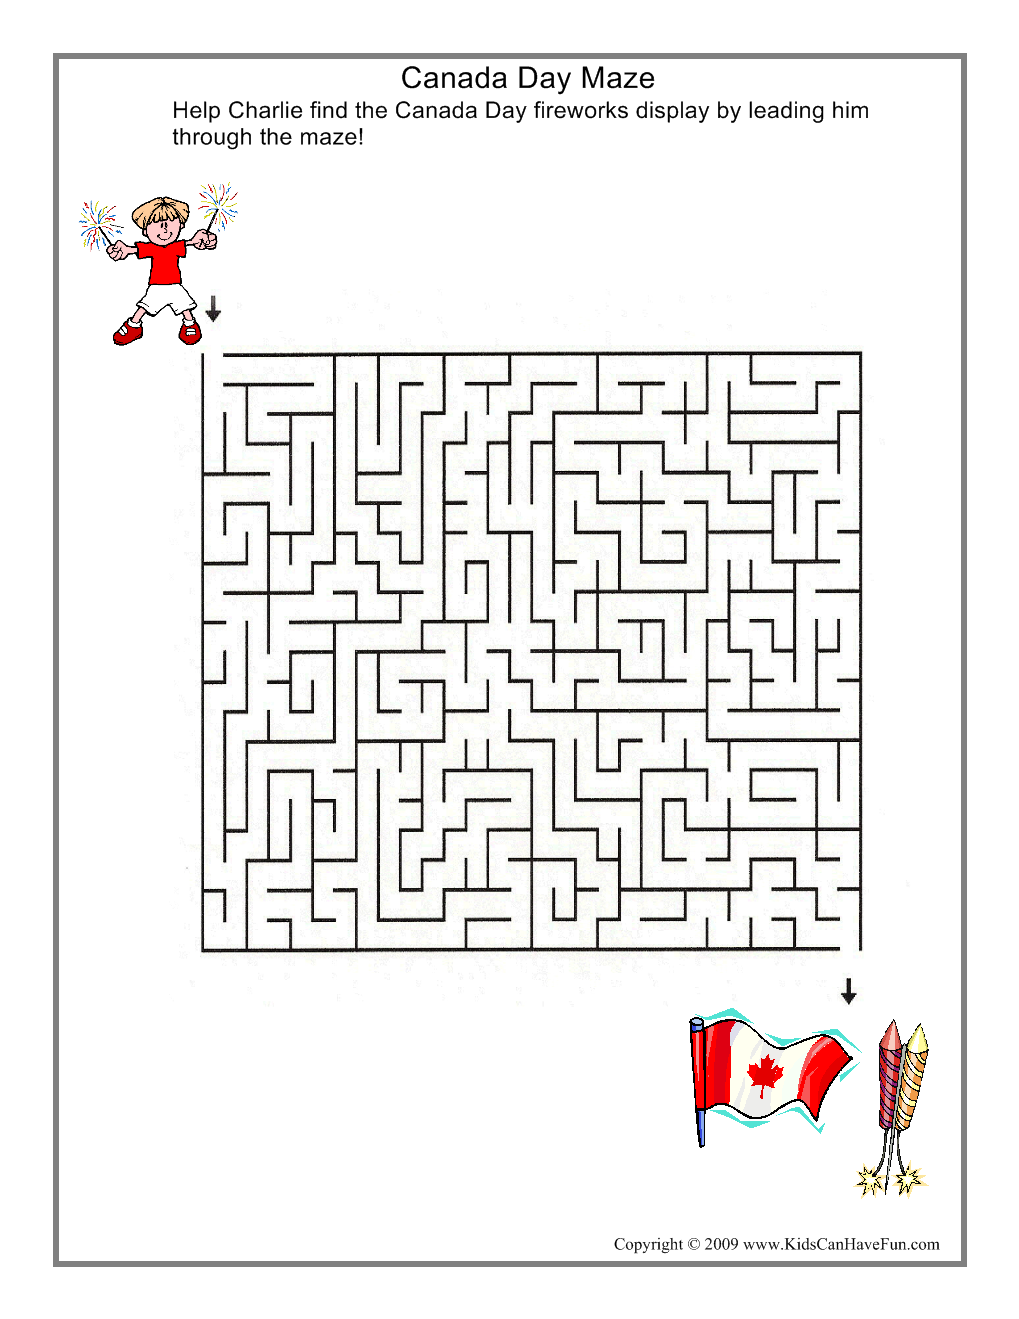 Canada day activities for the kids to help celebrate with coloring pages games crafts writing paper bookmarks and more